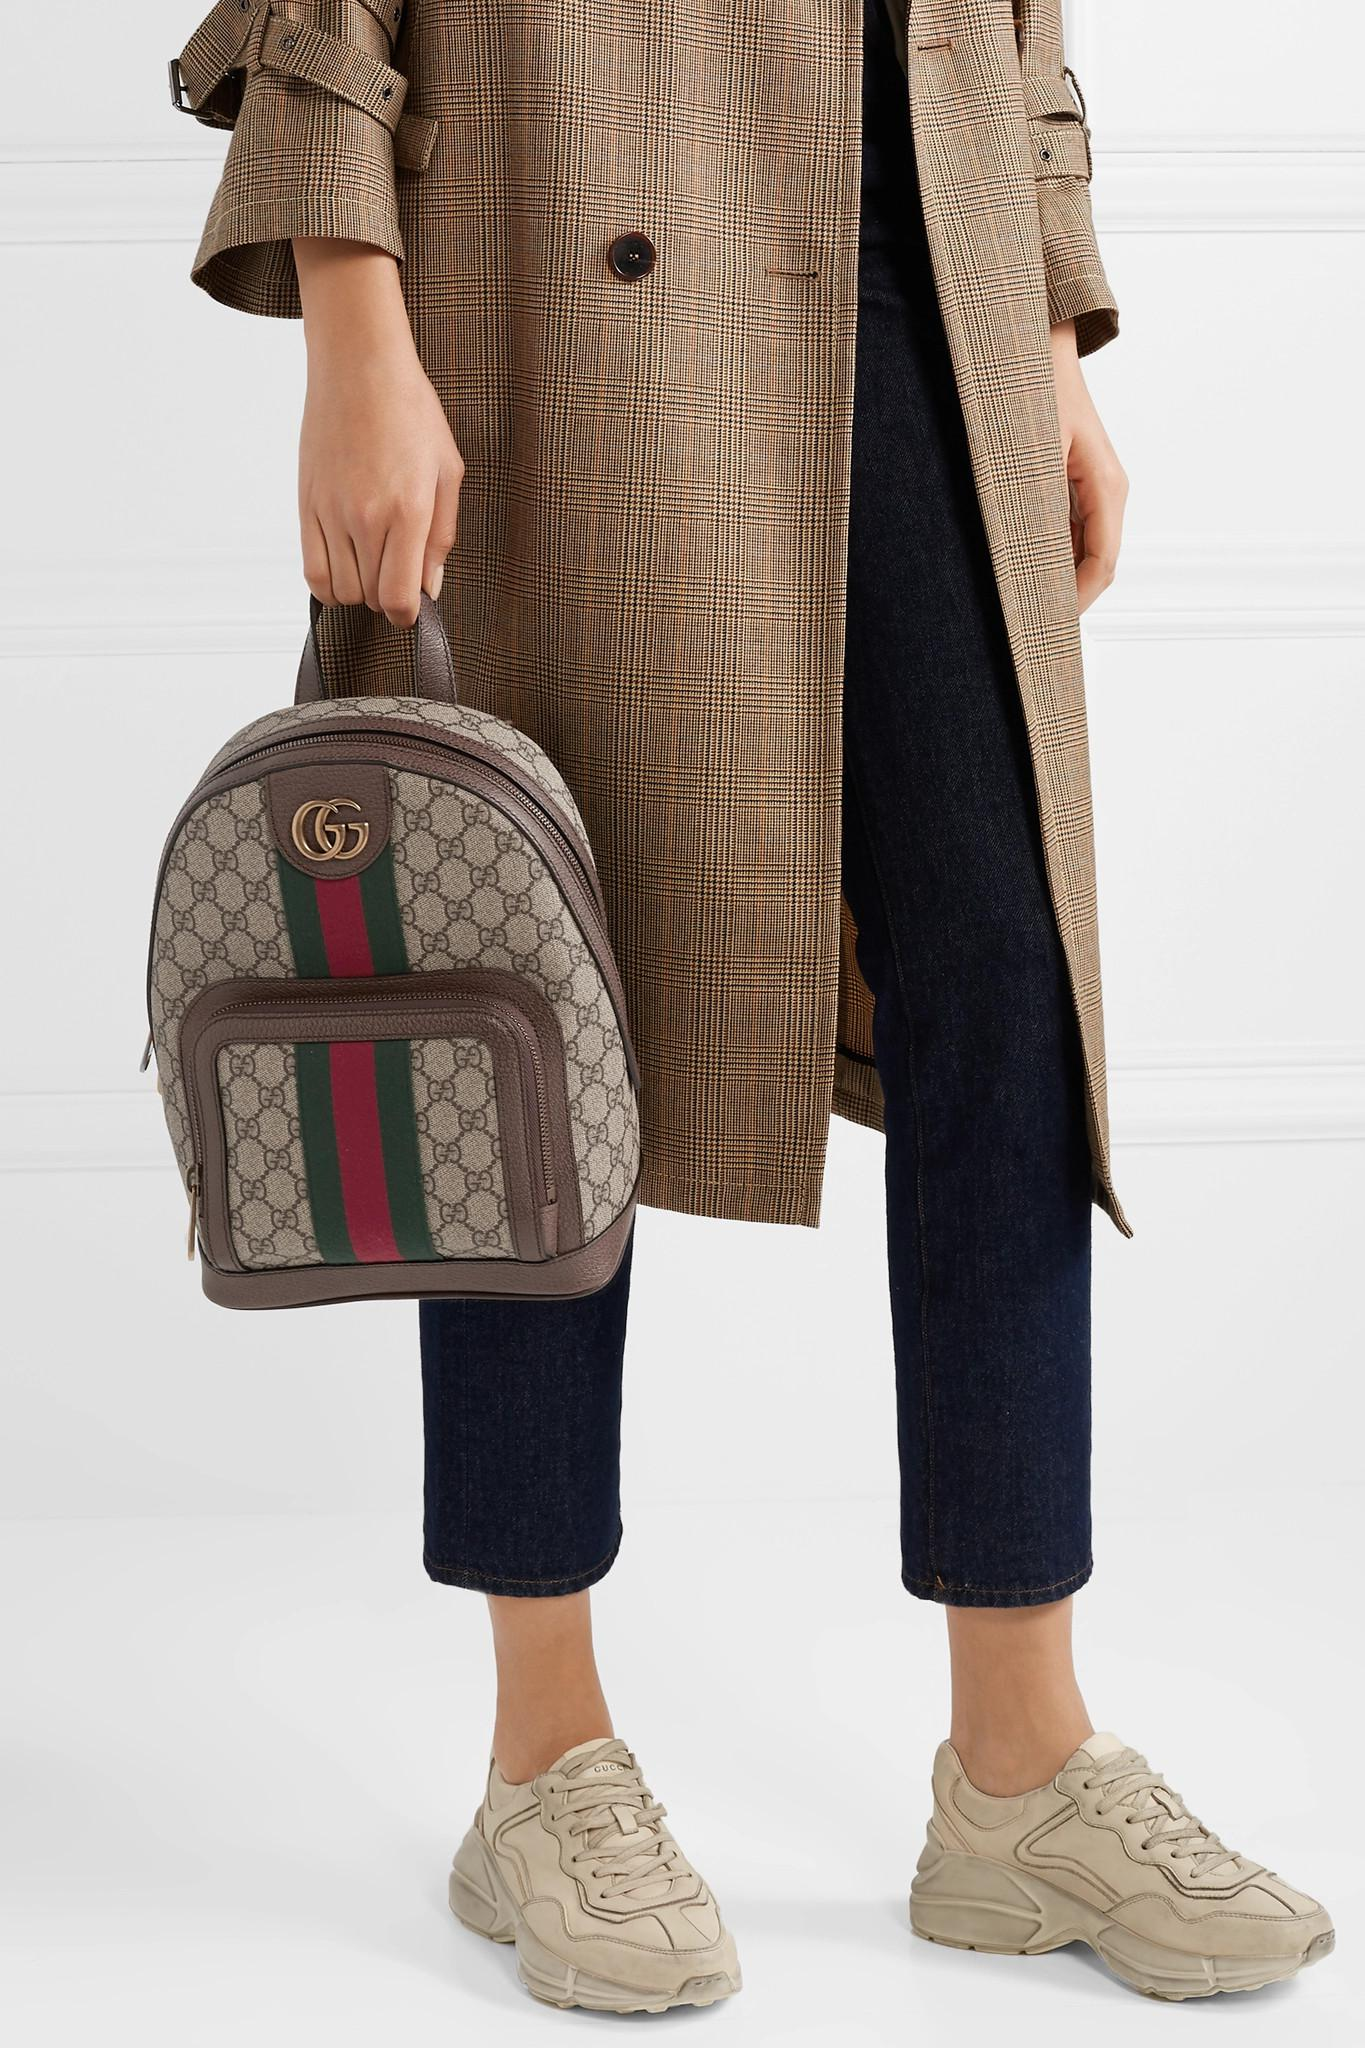 4e763f26f5 Gucci Ophidia Small Textured Leather-trimmed Printed Coated-canvas ...